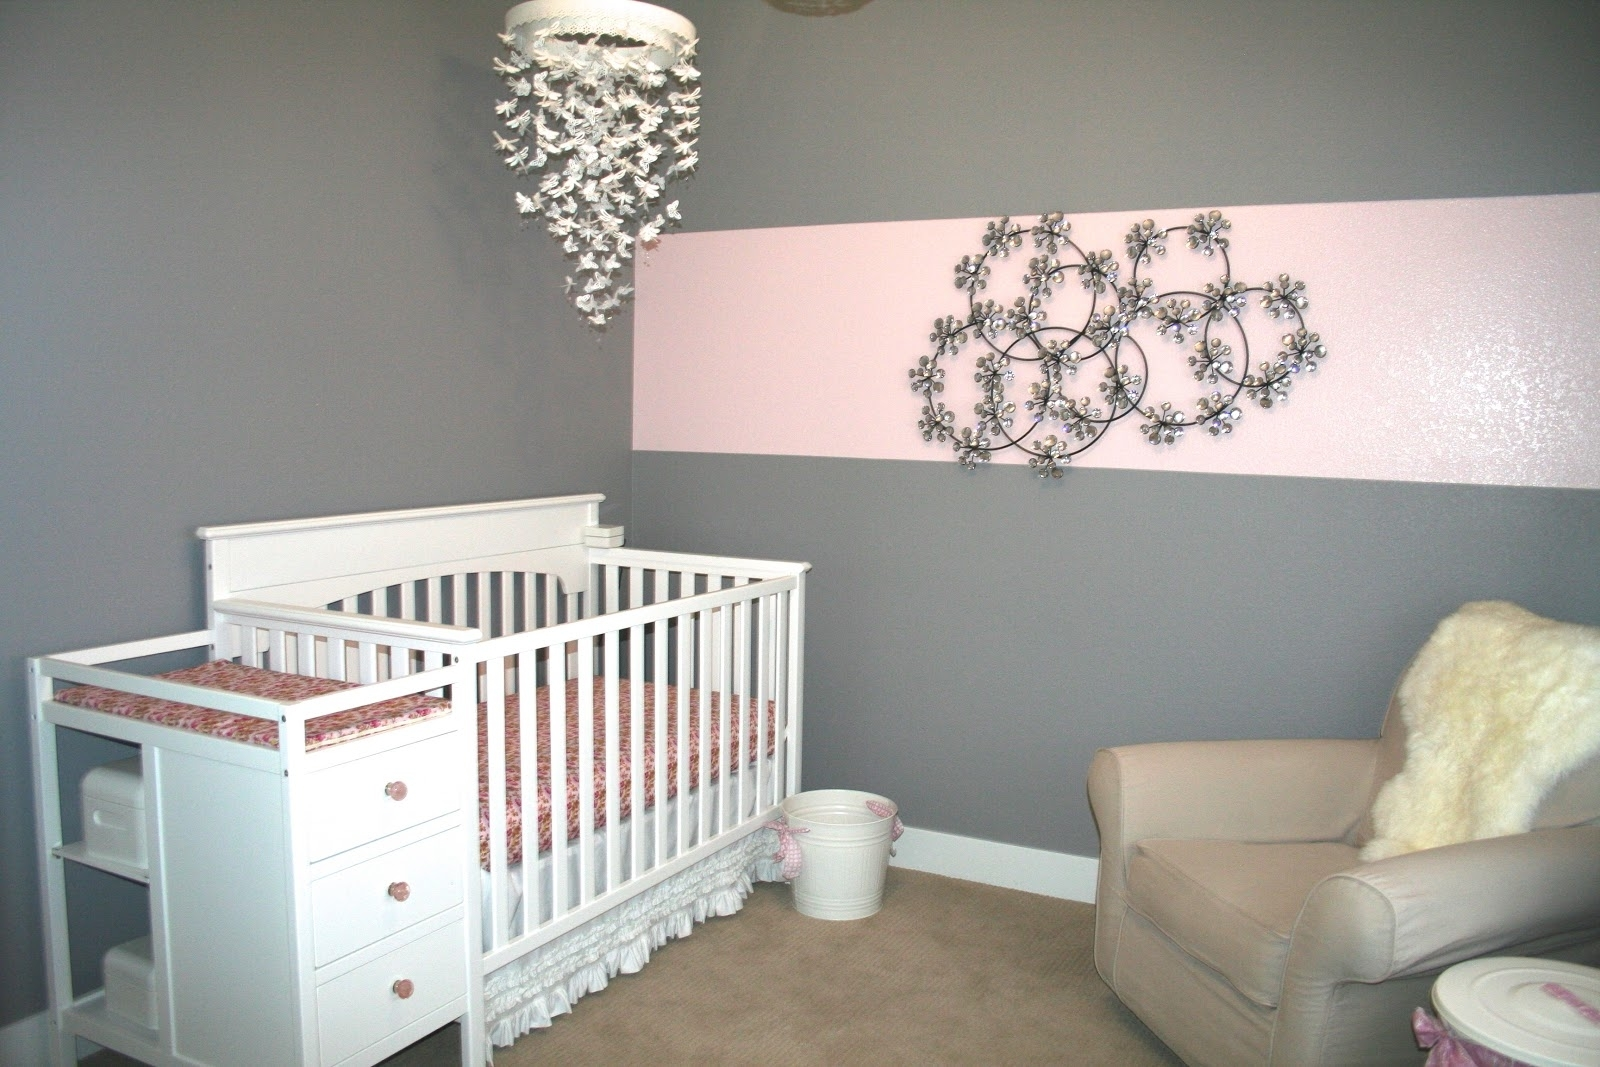 2017 Chandeliers For Baby Girl Room Pertaining To Baby Nursery Decor: Pictures Chandeliers For Baby Girl Nursery (View 2 of 15)